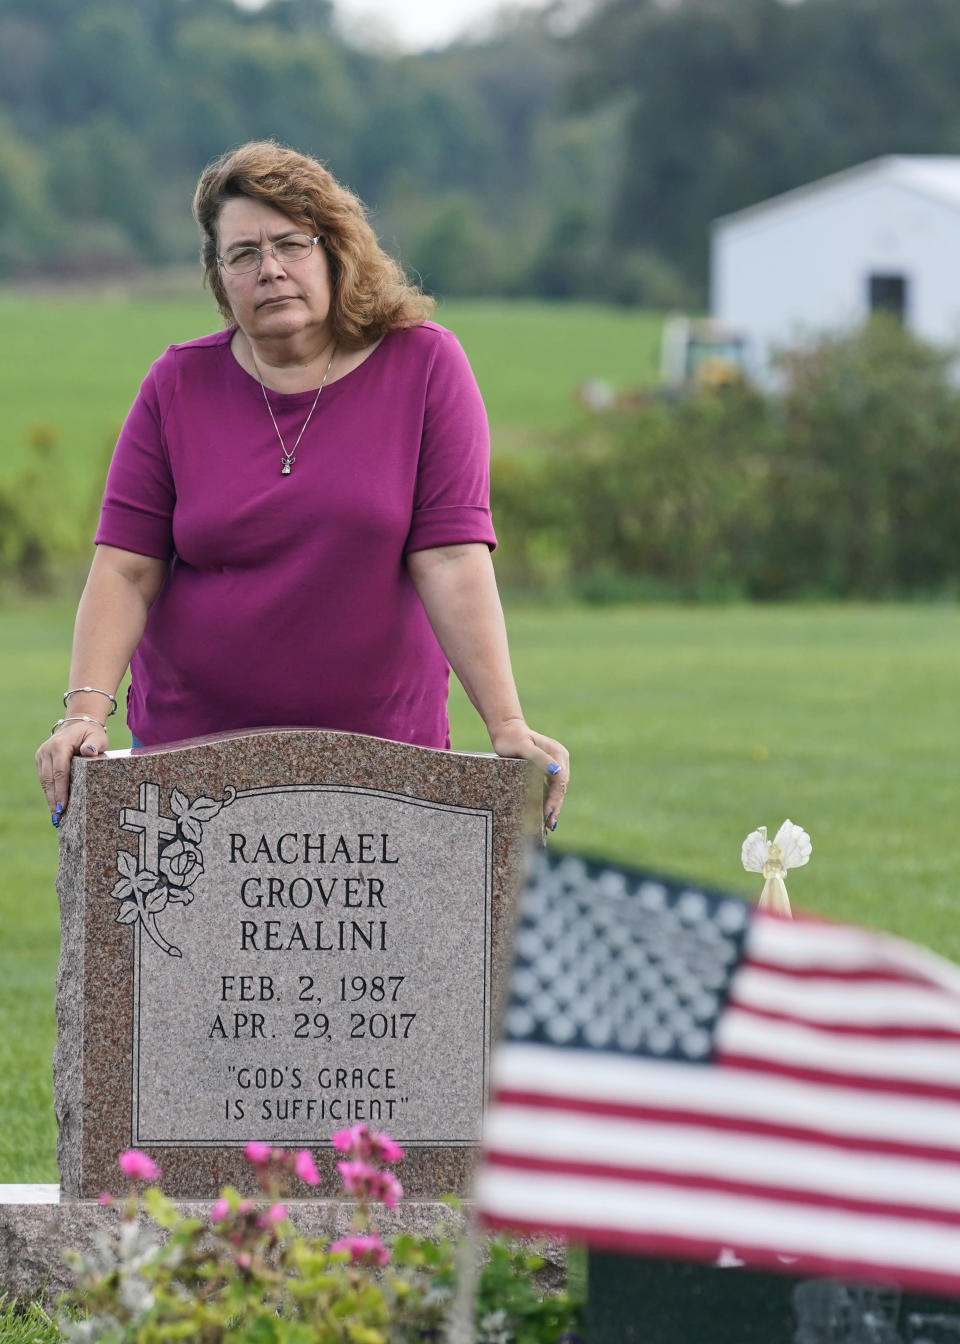 """Sharon Grover stands over the grave of her daughter, Rachael, Tuesday, Sept. 28, 2021, at Fairview Cemetery in Mesopotamia, Ohio. Grover believes her daughter started using prescription painkillers around 2013 but missed any signs of her addiction as her daughter, the oldest of five children, remained distanced. A """"bellwether trial is set to start Monday in federal court in Cleveland to determine whether retail pharmacy chains are liable for opioid crisis costs in two Ohio counties. Grover lives in Trumbull County, Ohio, which along with Lake County, have sued four retail pharmacy chains to recover """"public nuiscance"""" costs the opioid crisis continues to inflict on their communities. (AP Photo/Tony Dejak)"""